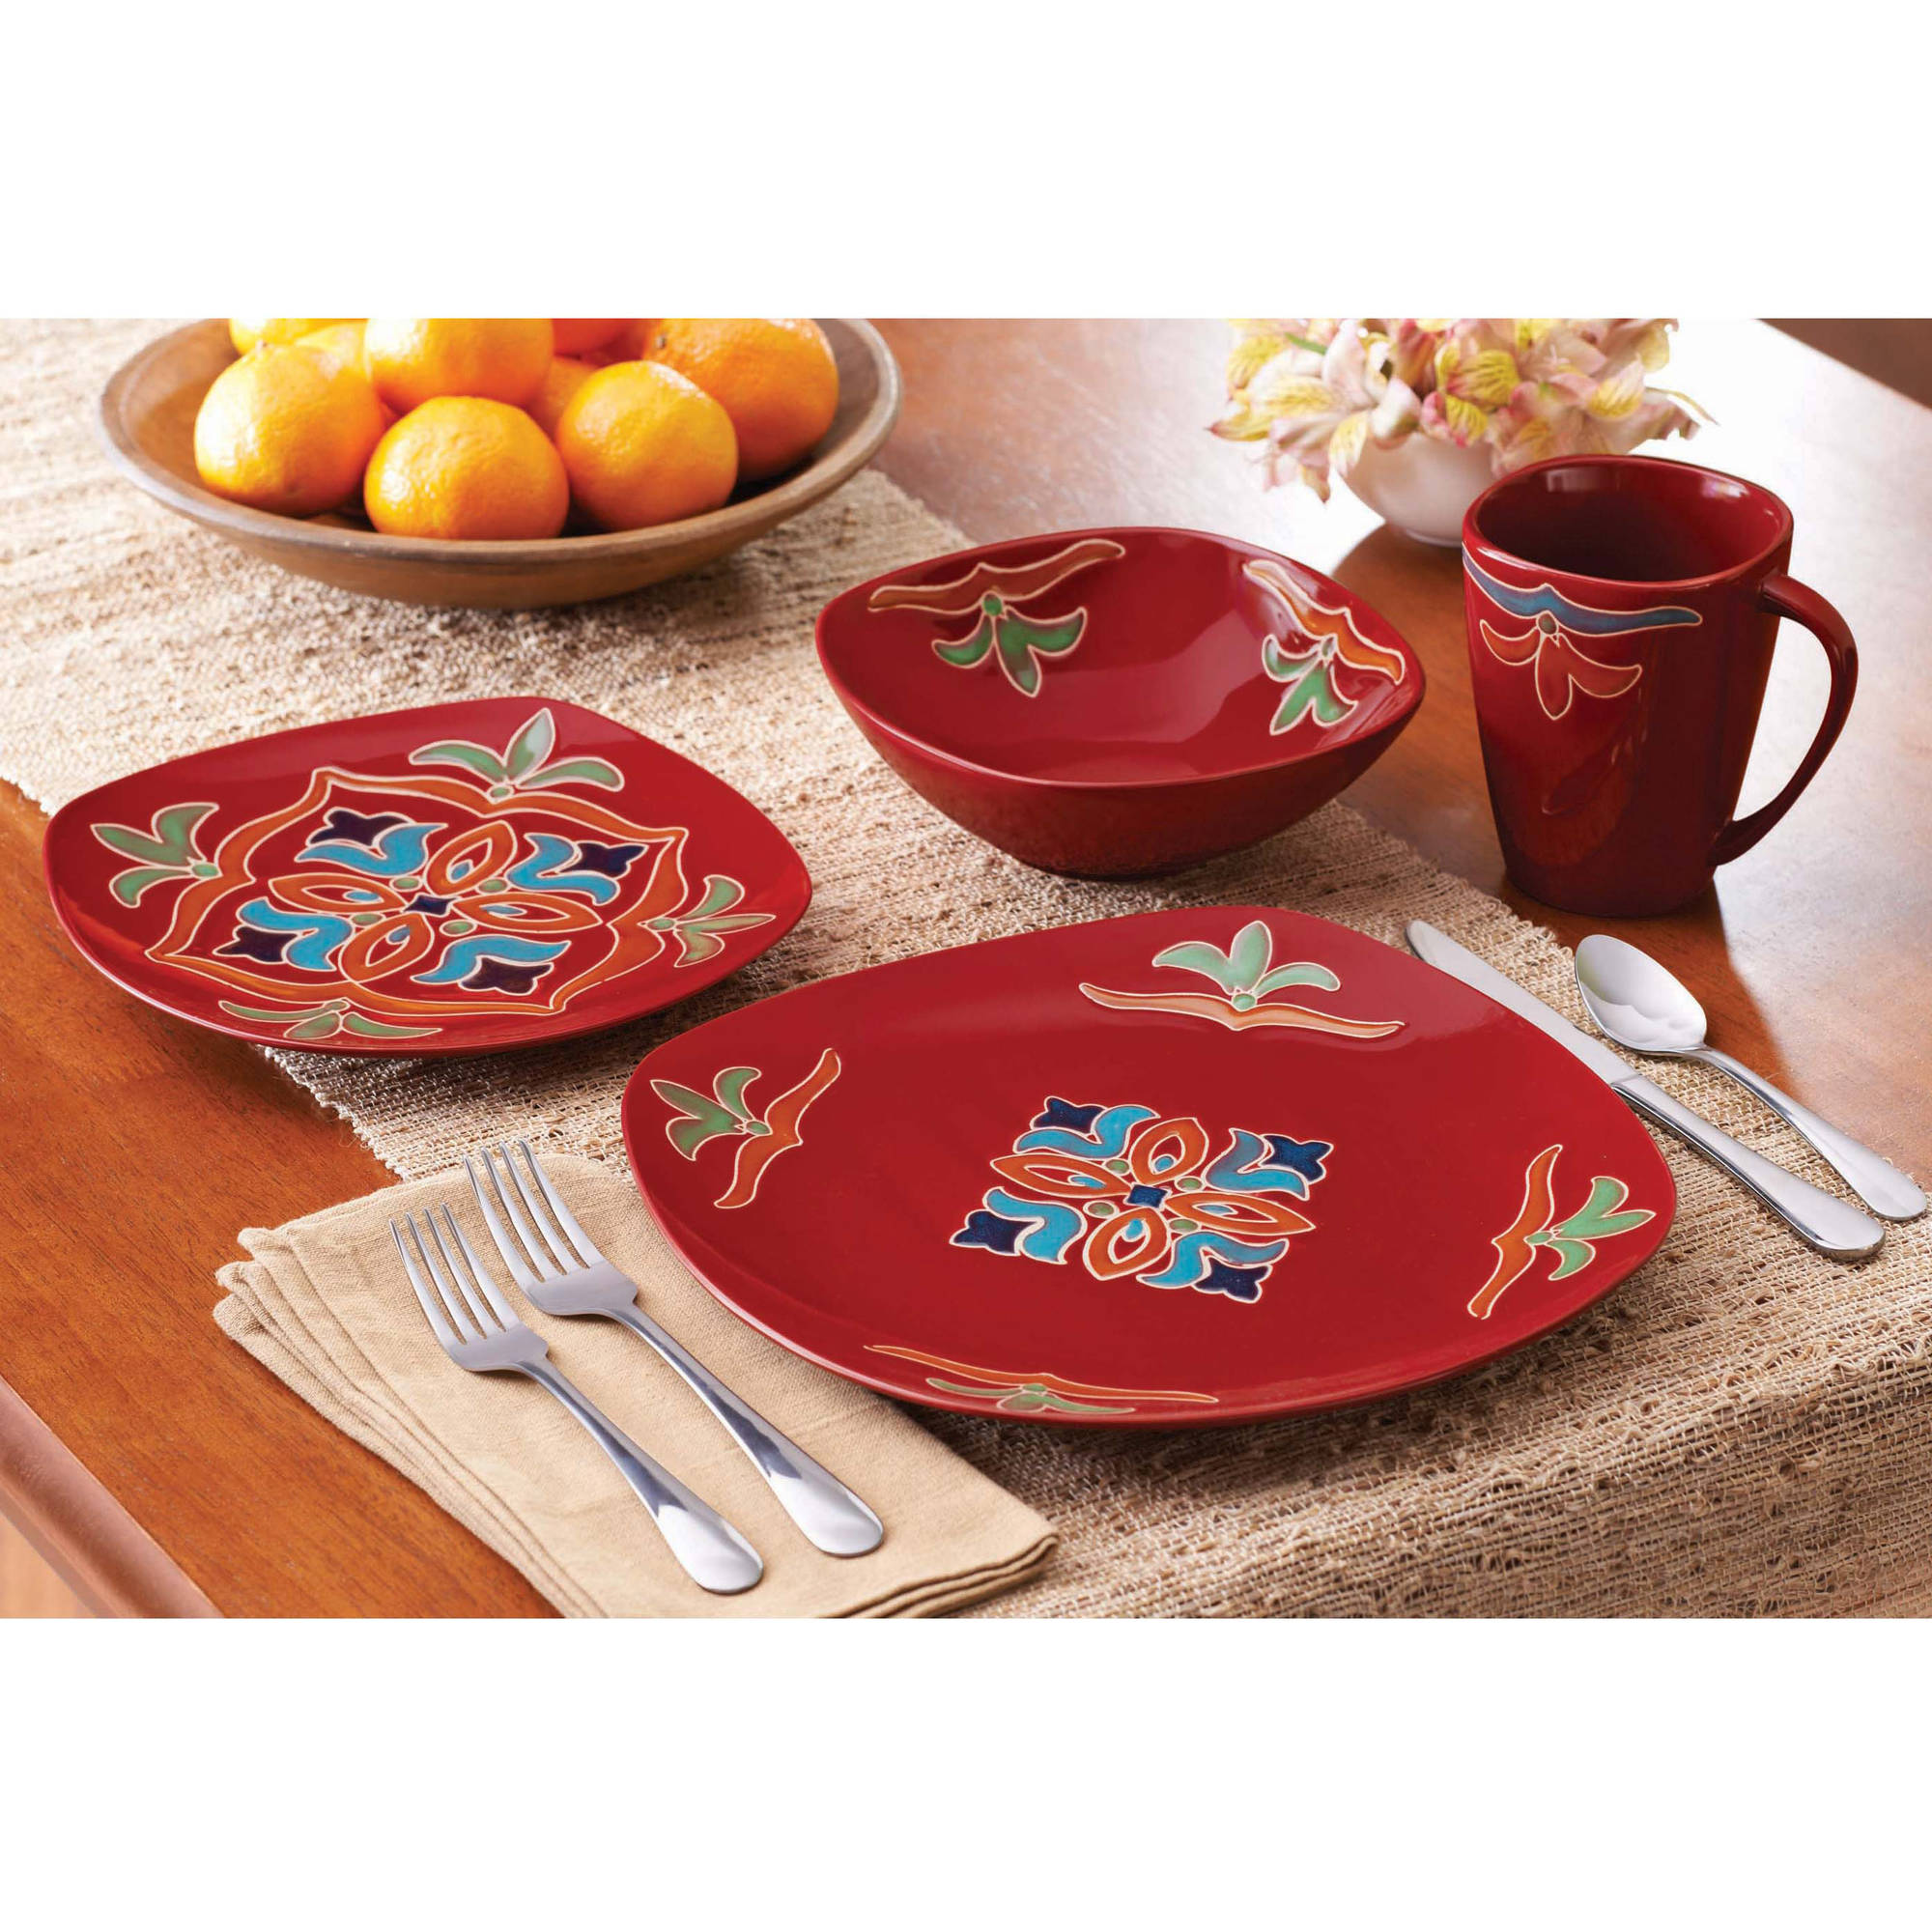 Better Homes And Gardens Medallion 16 Piece Square Dinnerware Set, Red    Walmart.com